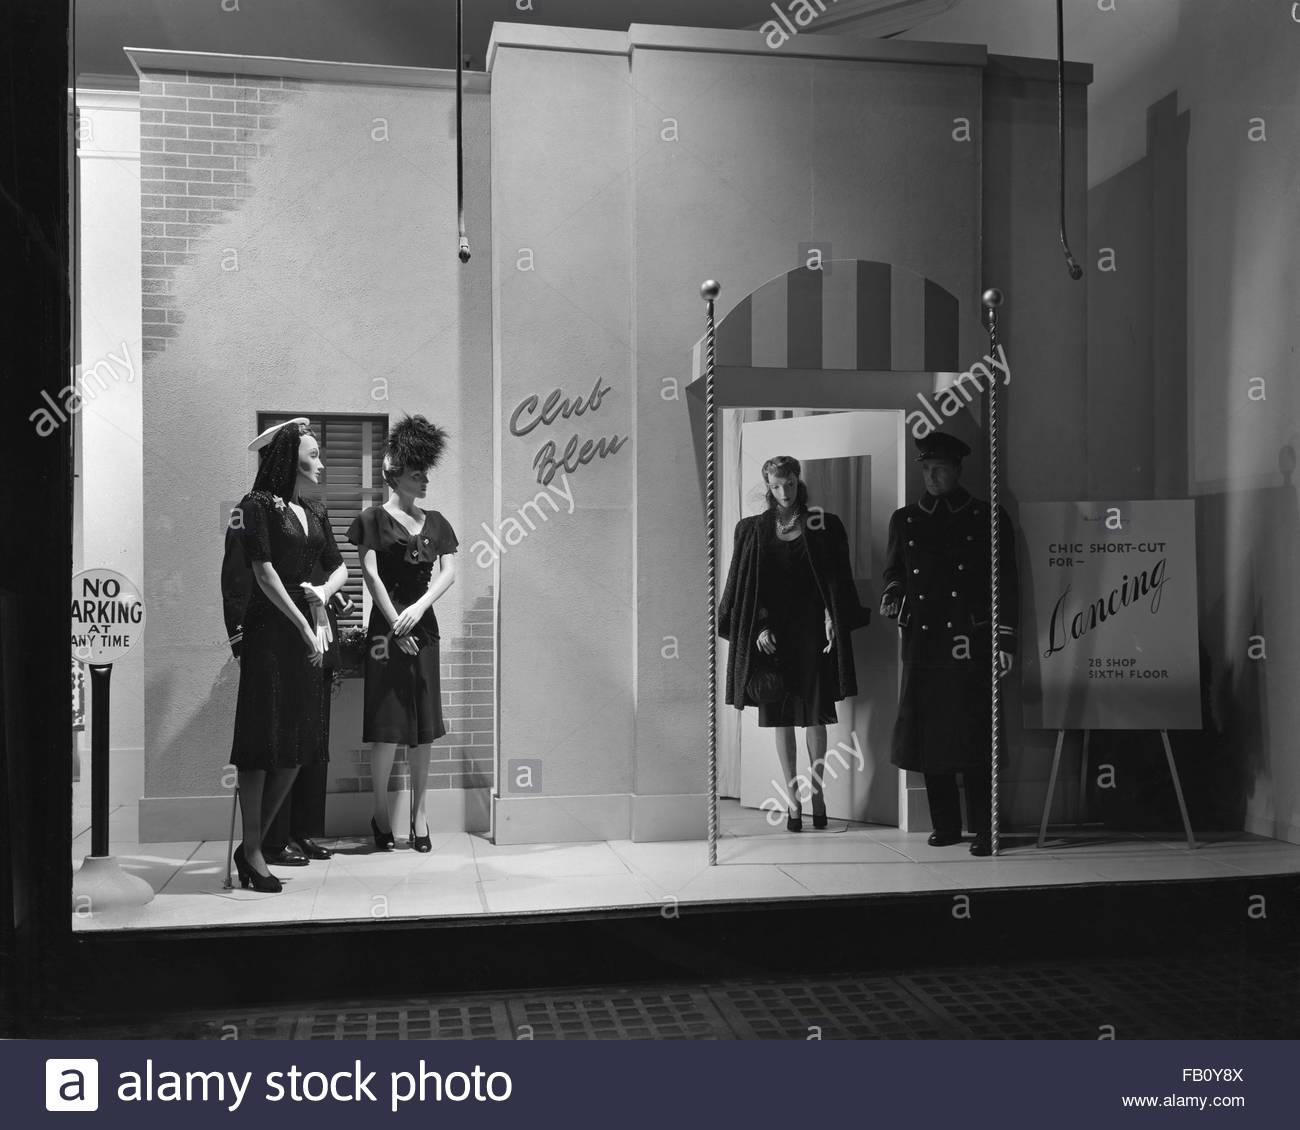 Window displays at Marshall Field and Company featuring the U.S. Army, etc., 1943 Oct. 6. 28 shop, chic-short-cut Stock Photo